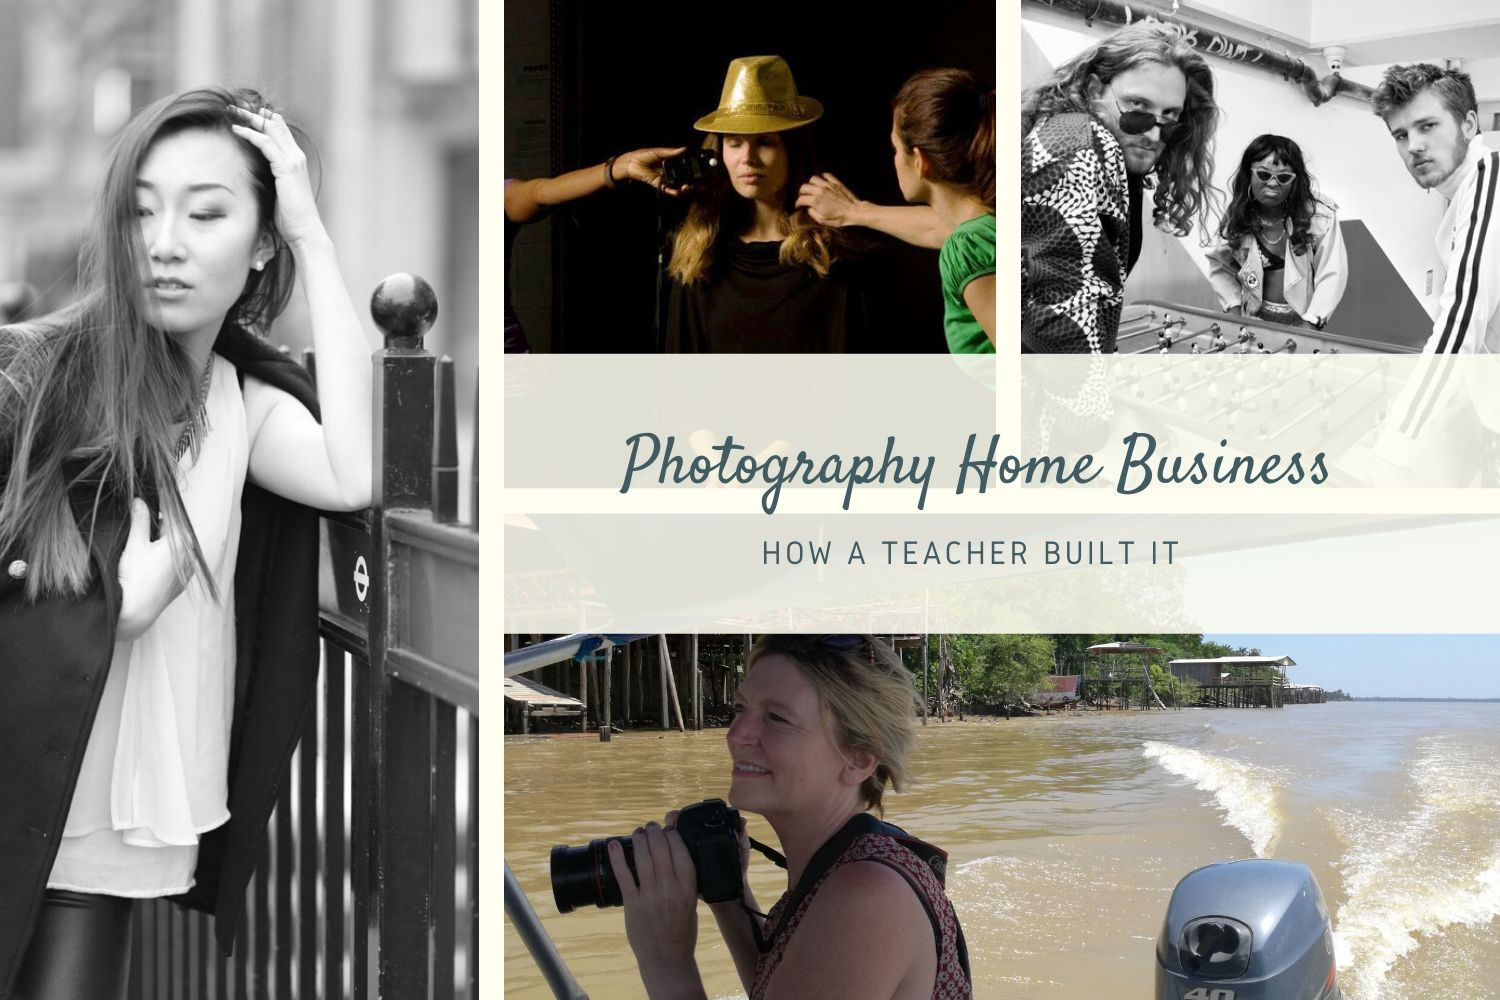 Photography Home Business - Petra Eujane